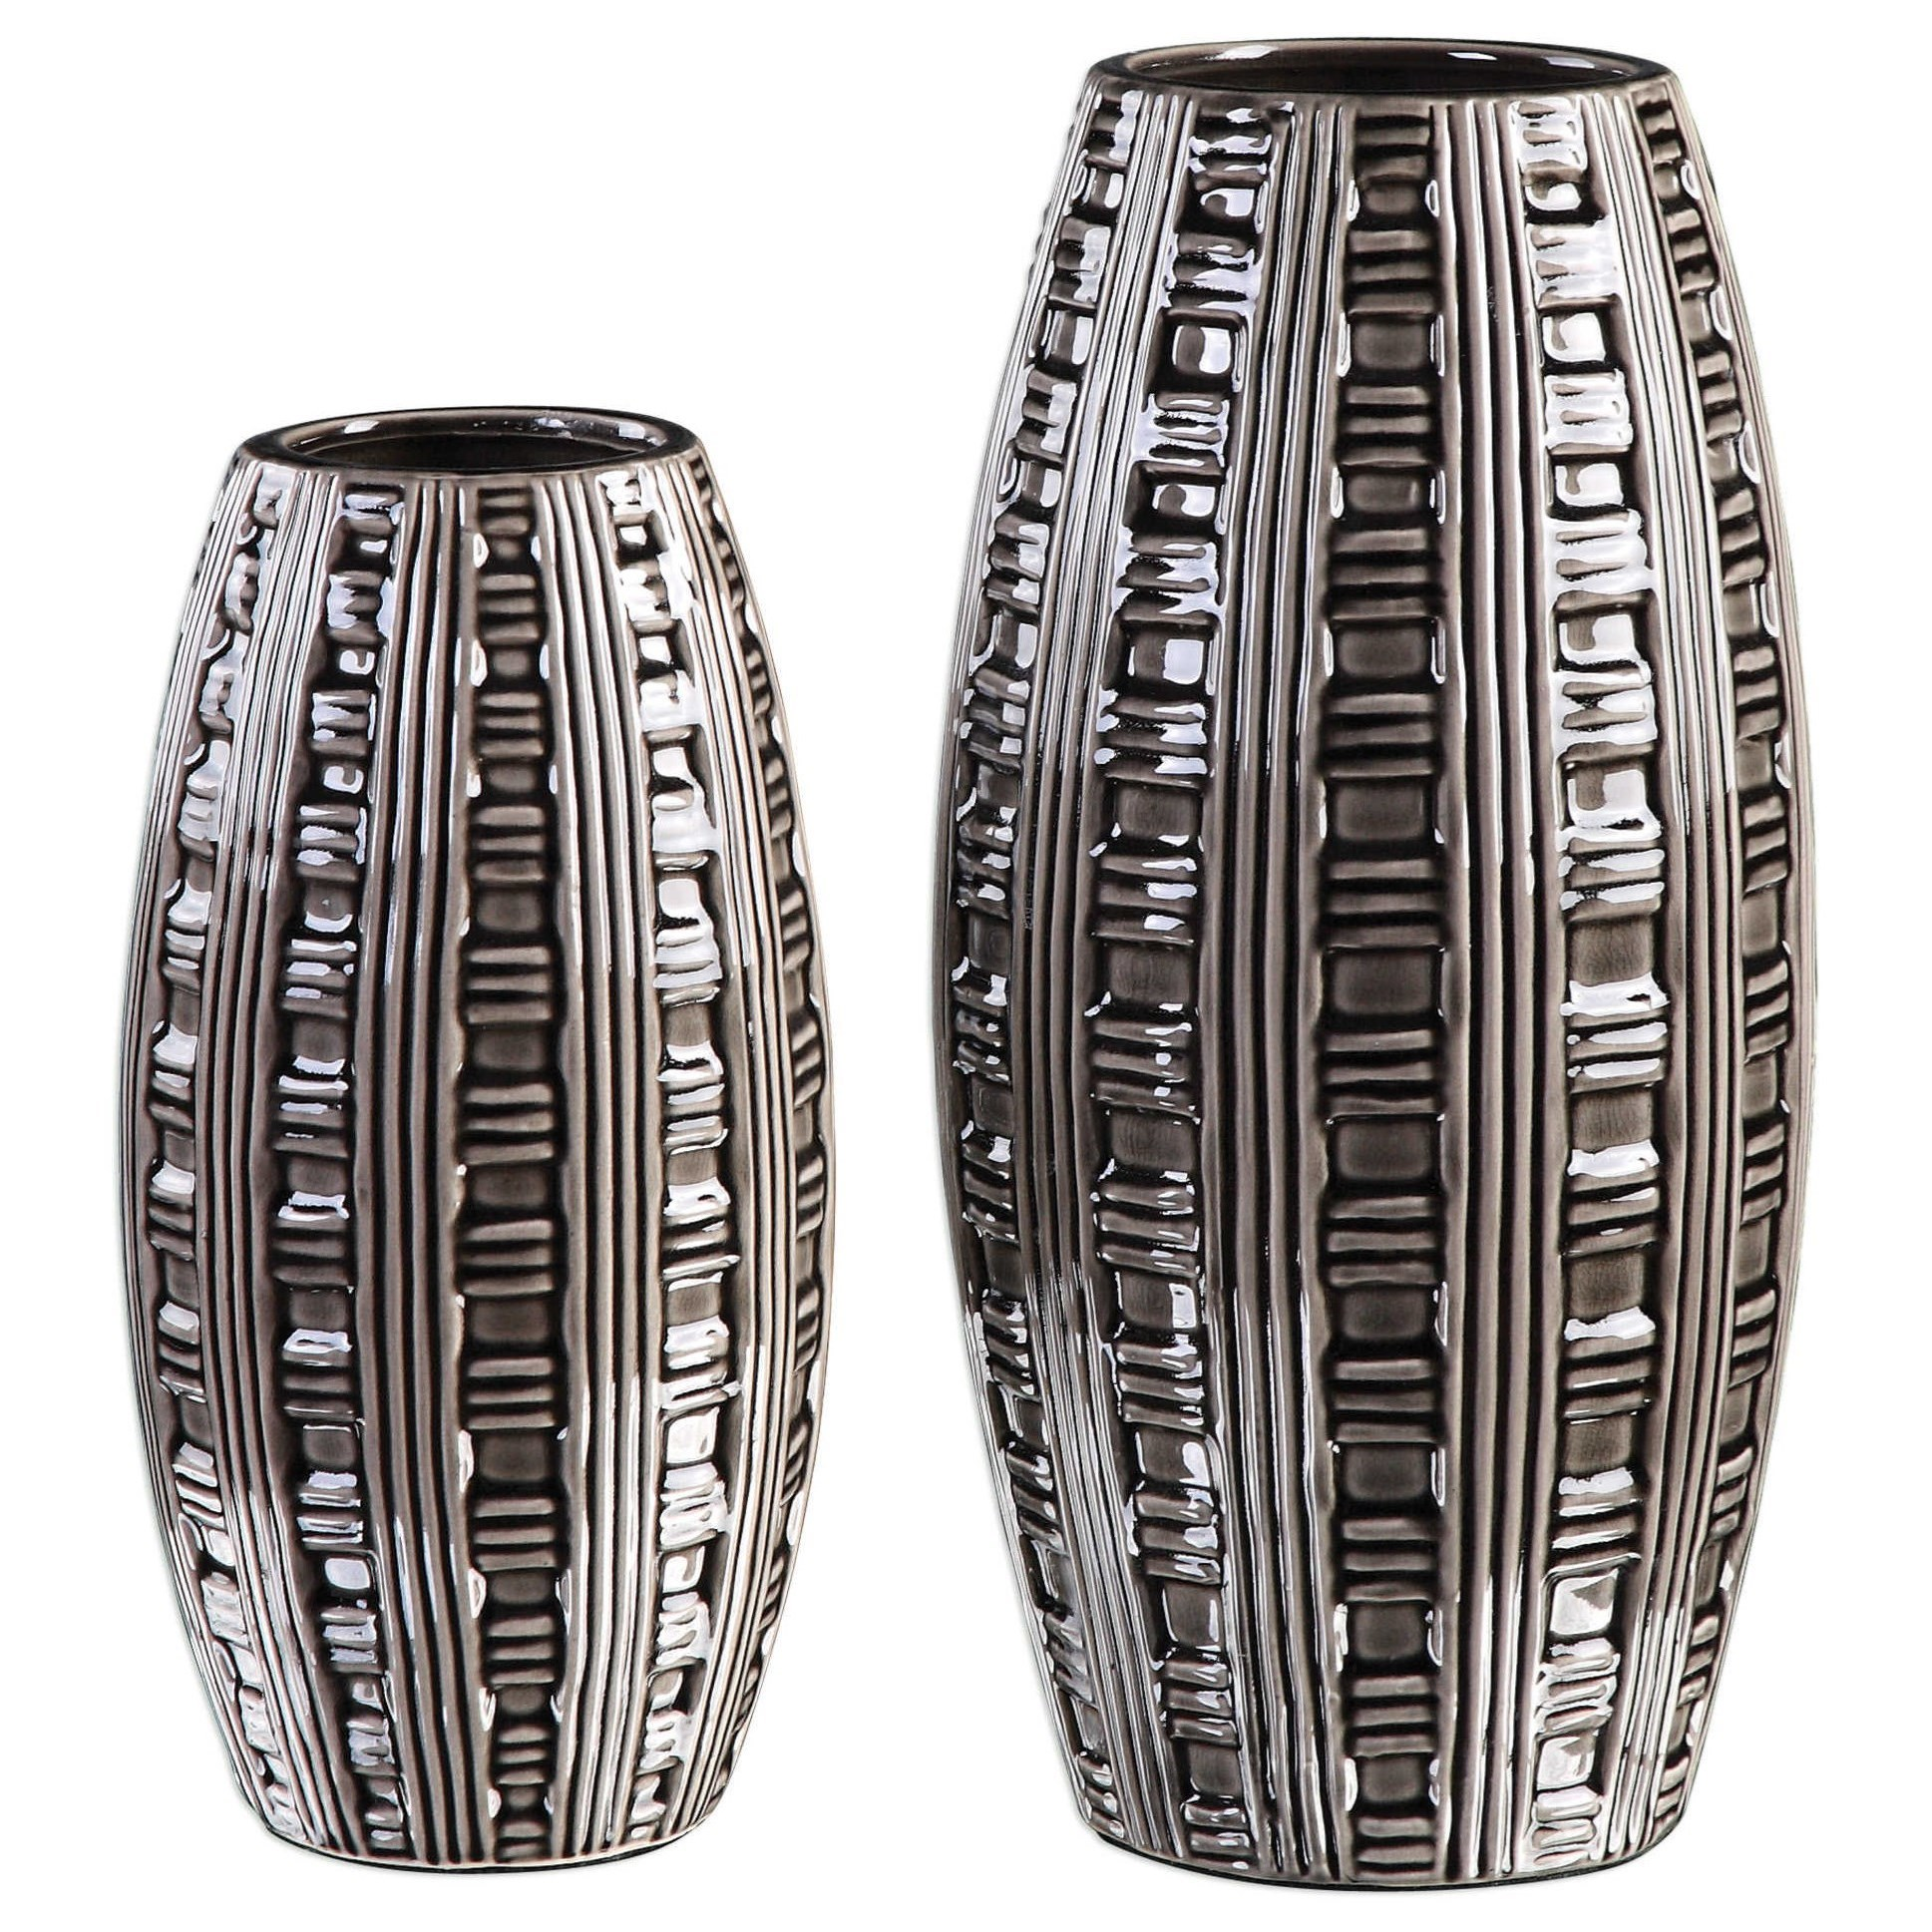 Aura Weave Pattern Vases (Set of 2)